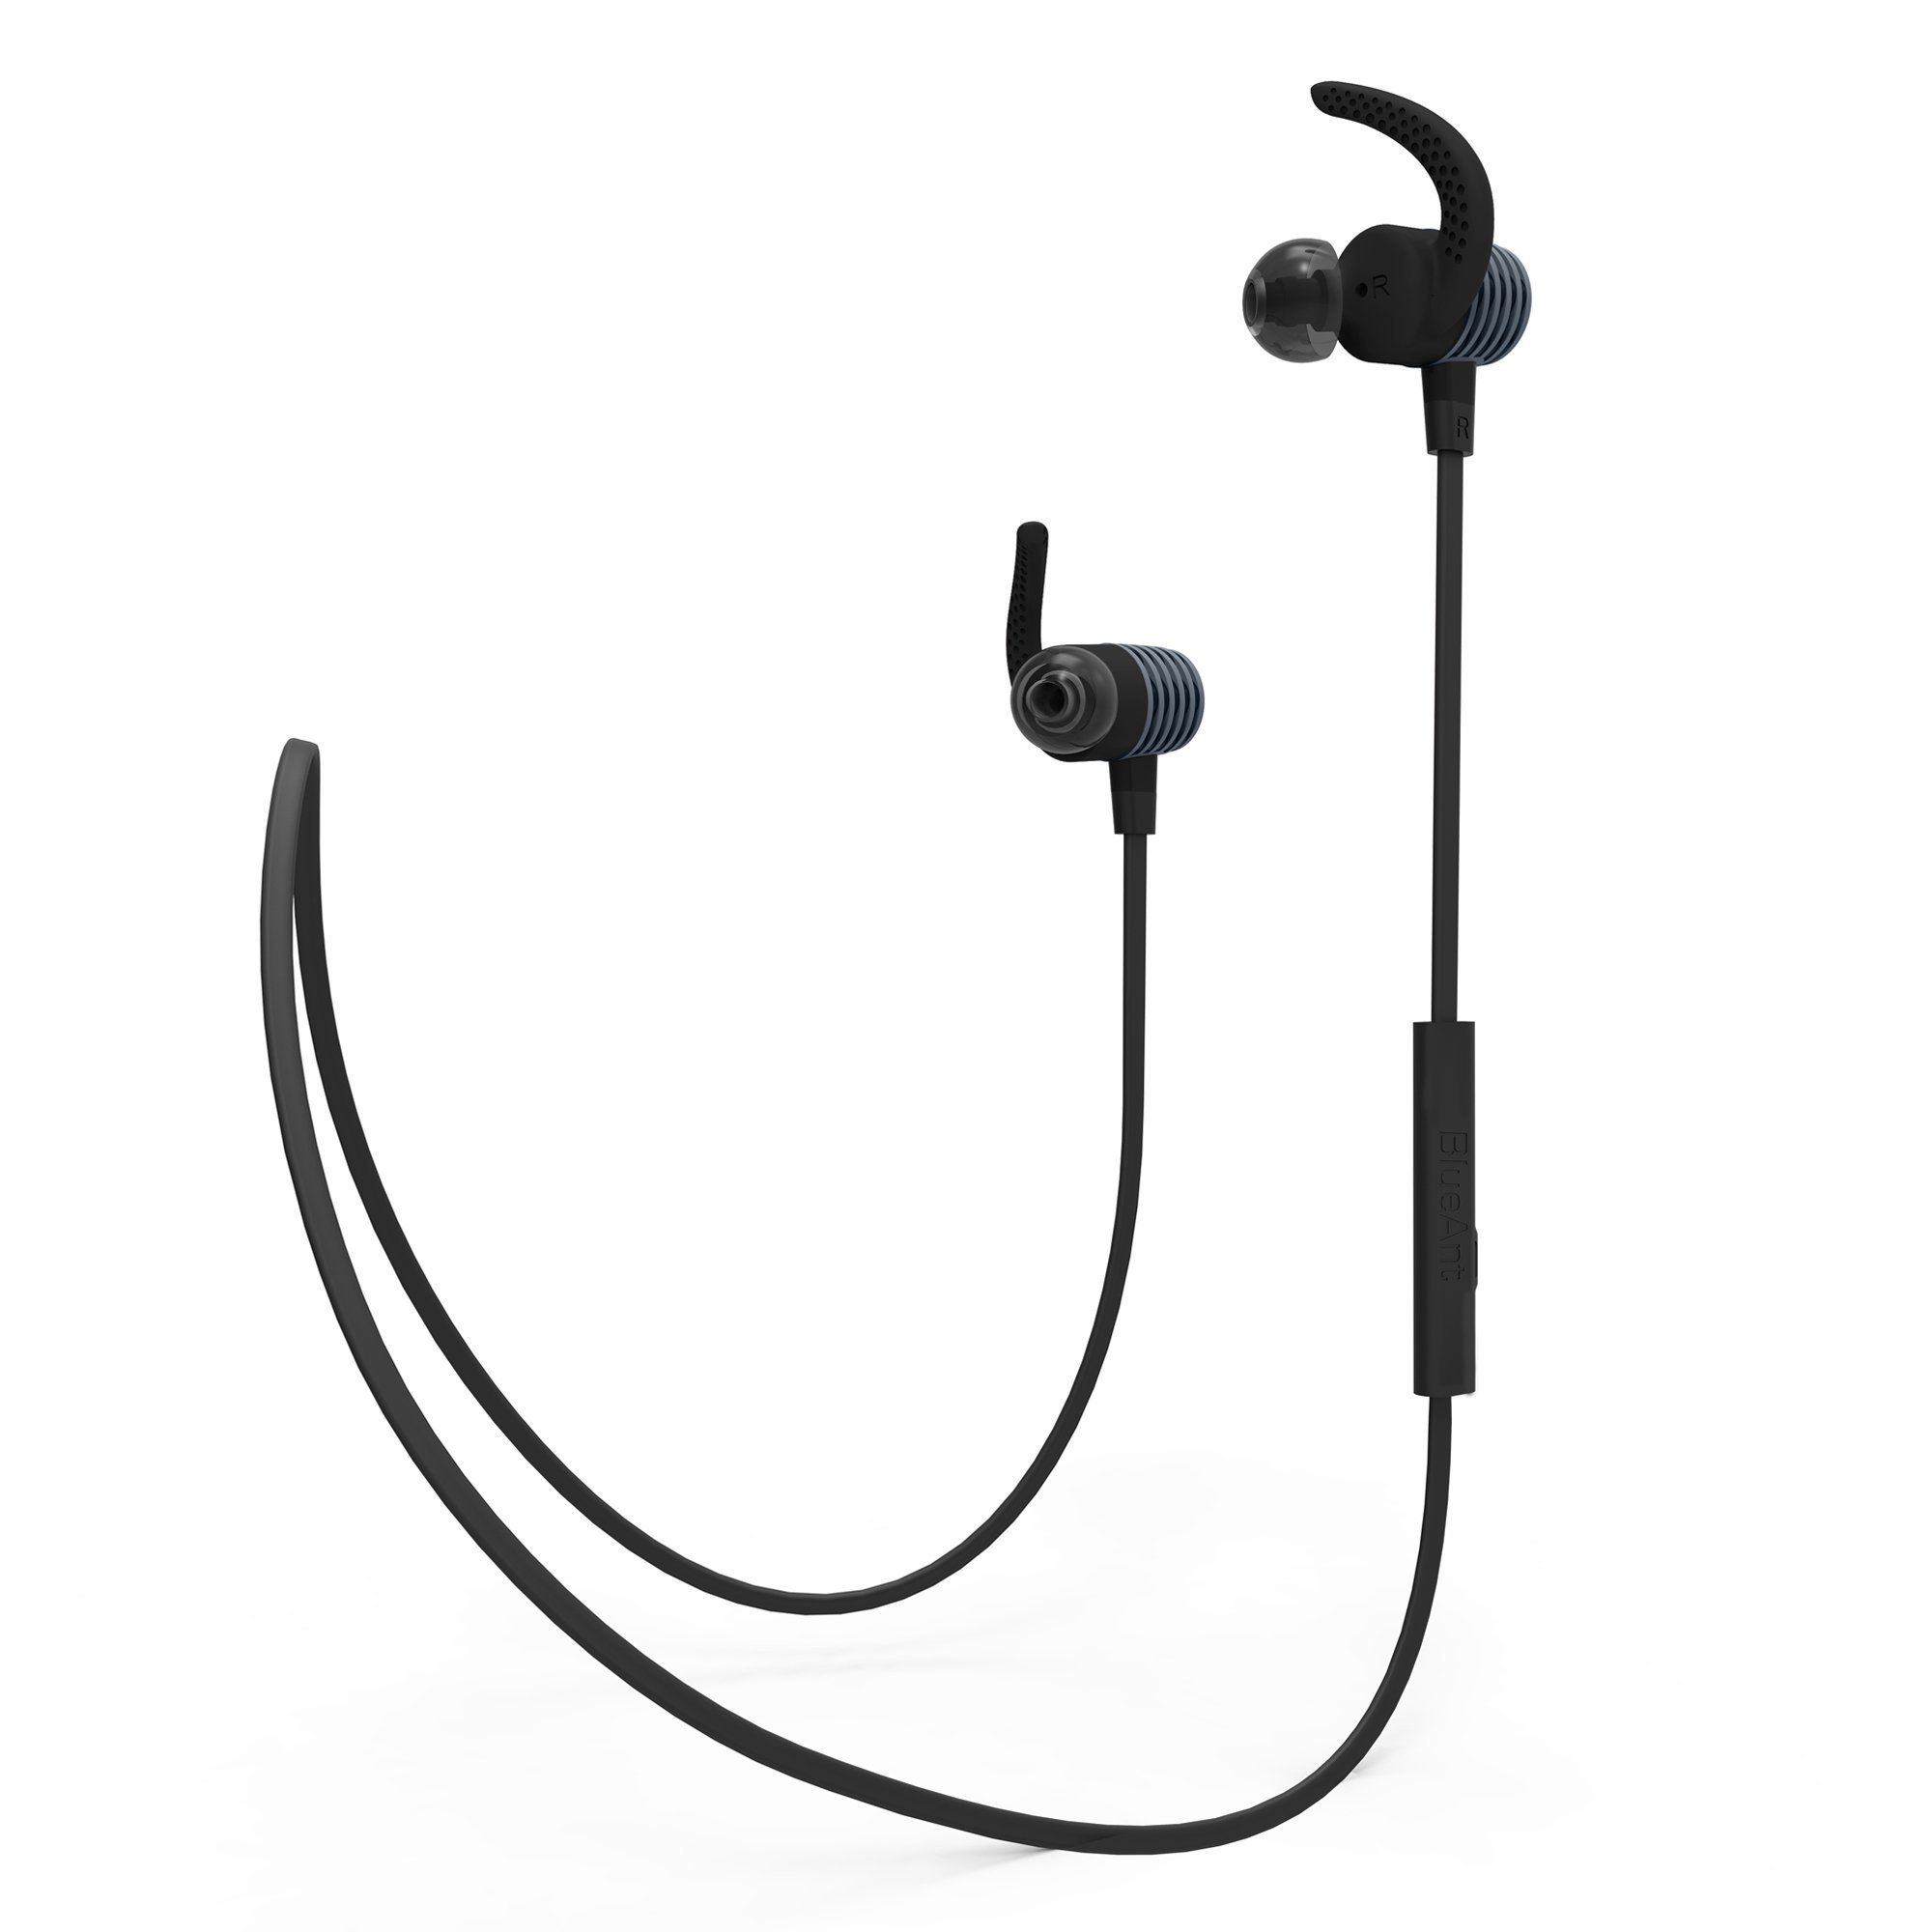 Blueant Pump Mini 2 Hd Wireless Sportbuds Stable And Lightweight